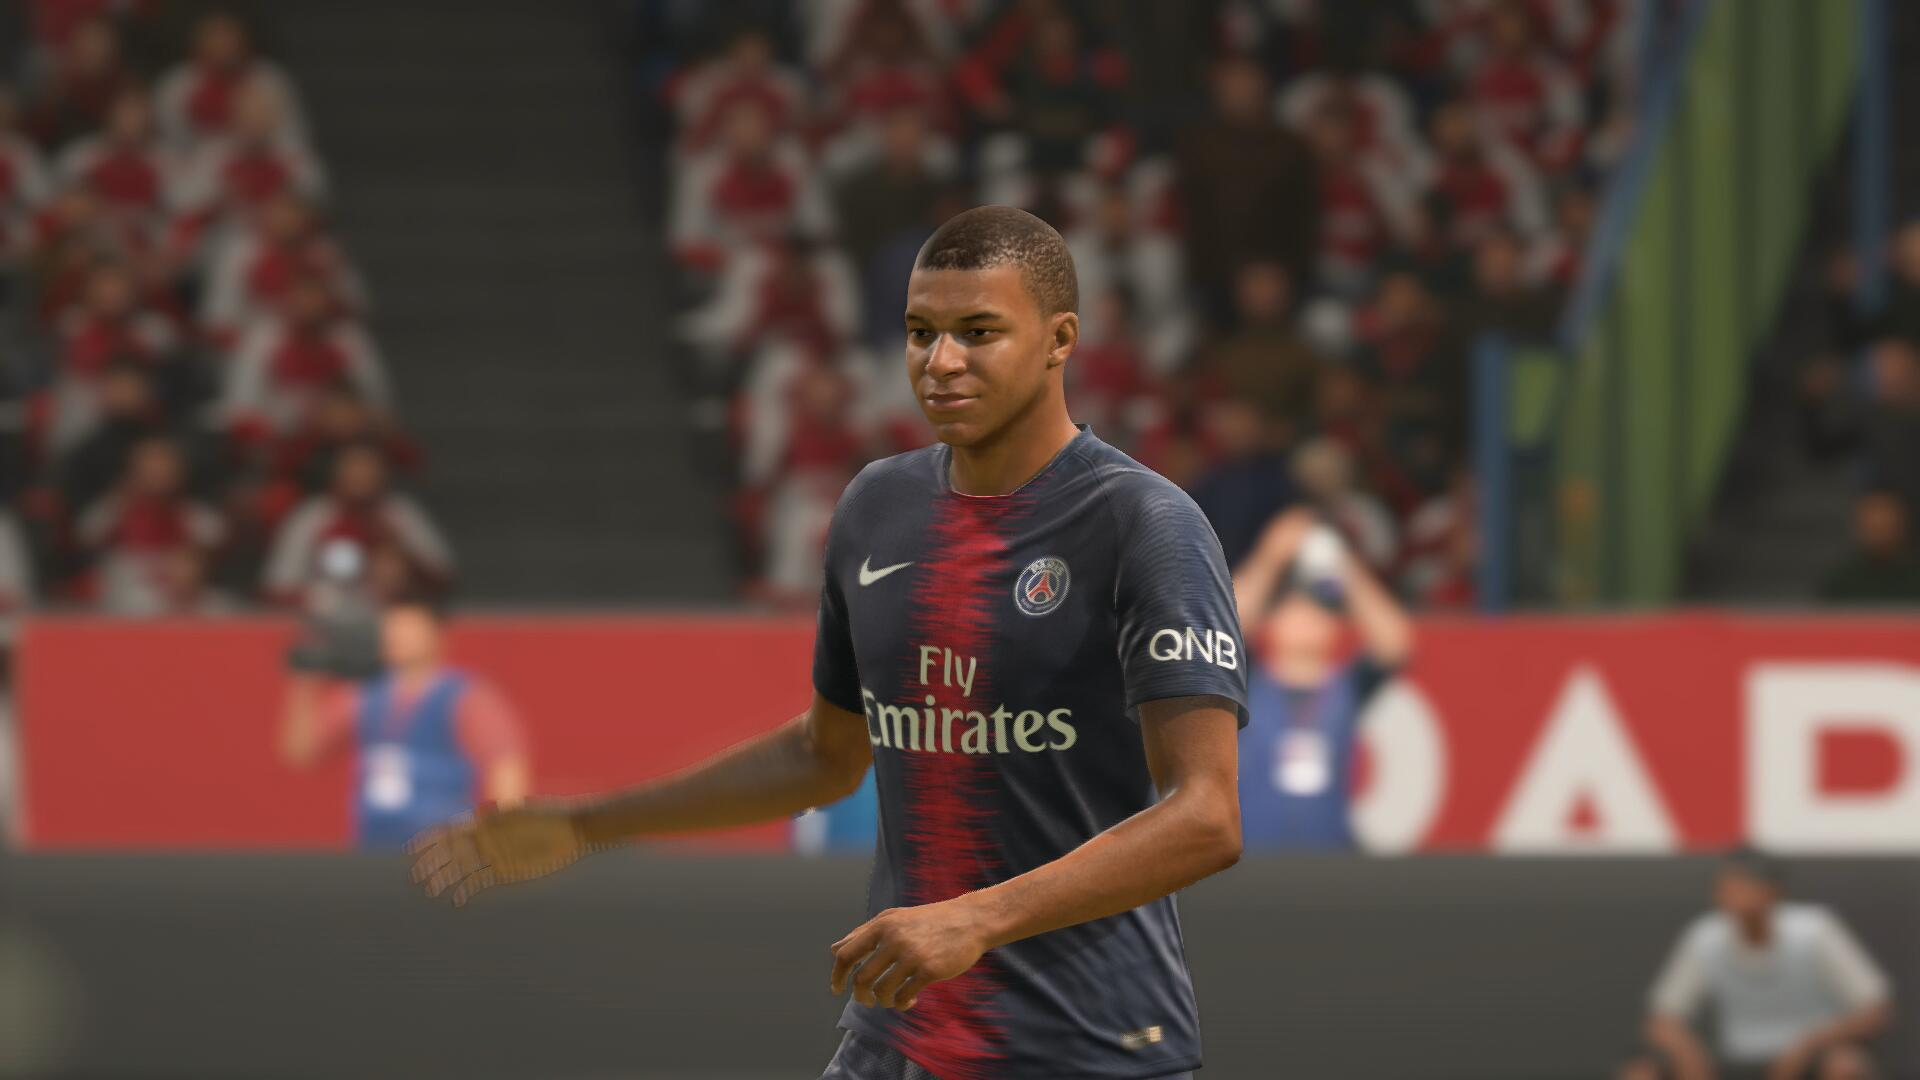 FIFA 19 Career Mode Best Young Players - Highest FIFA 19 Potential Players Under 21